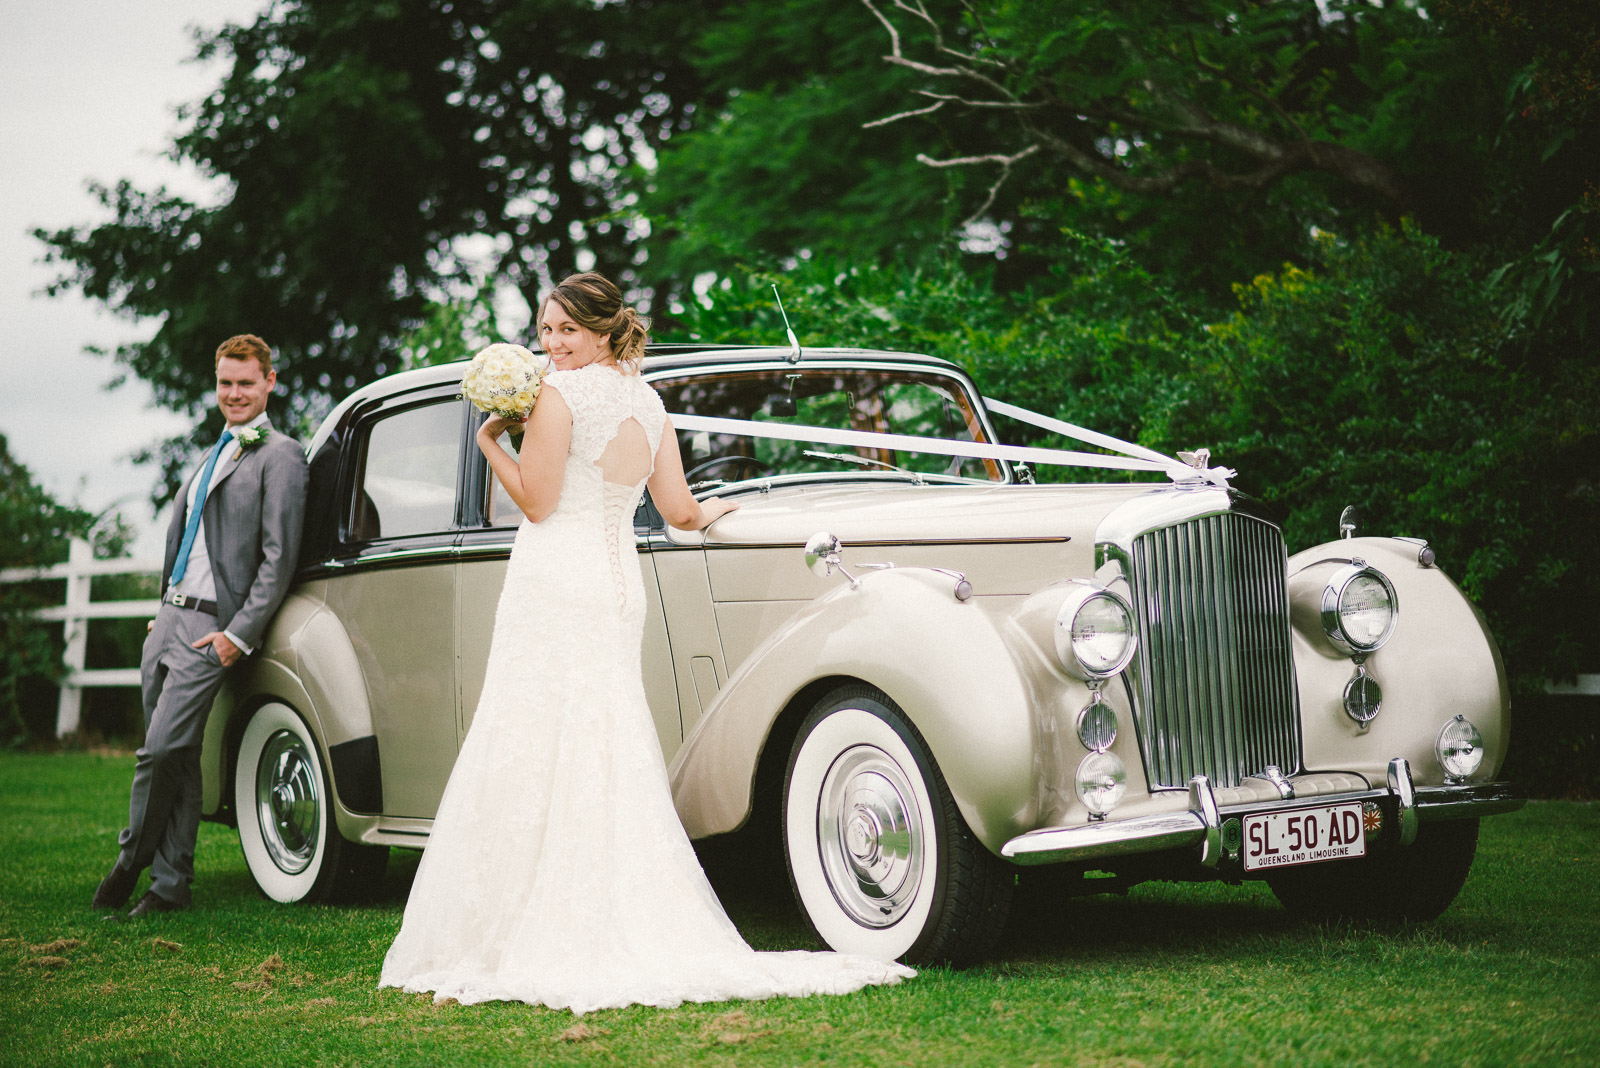 Bride next to 1950's Classic Bentley